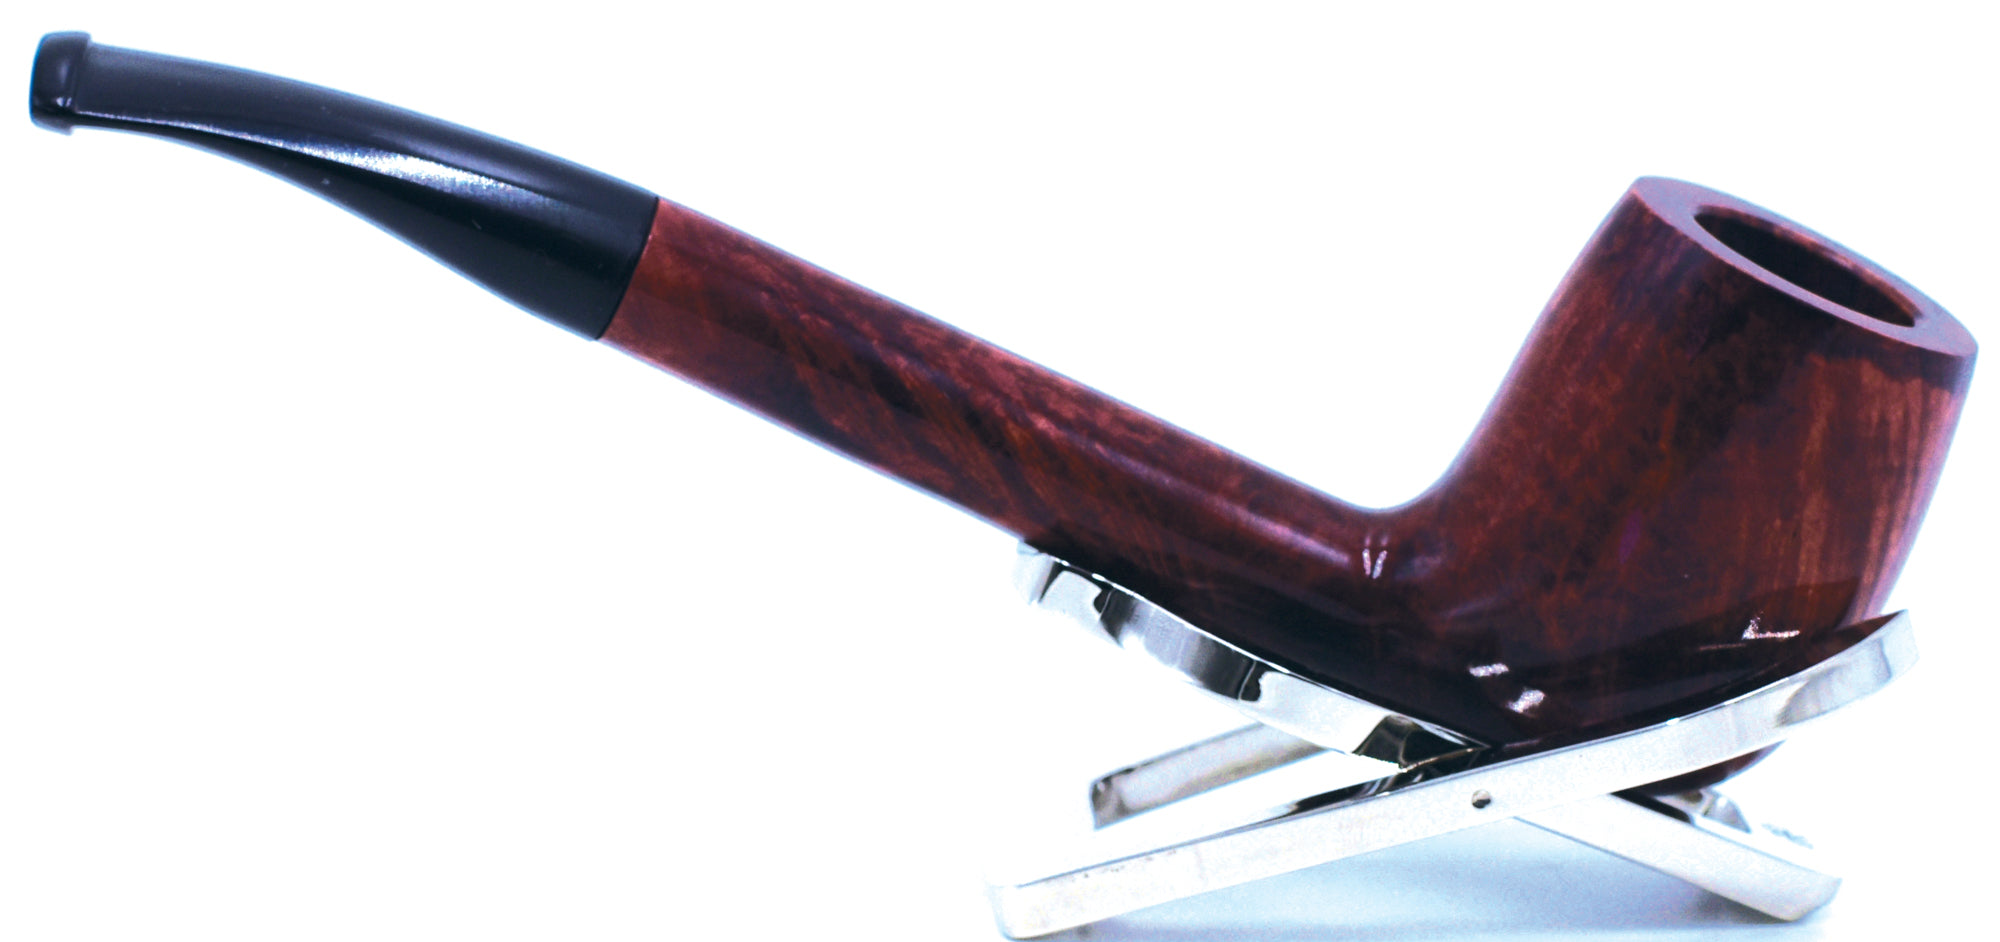 LEGENDEX® CANADIAN* Non-Filtered Long Stem Briar Smoking Pipe Made In Italy 01-08-804